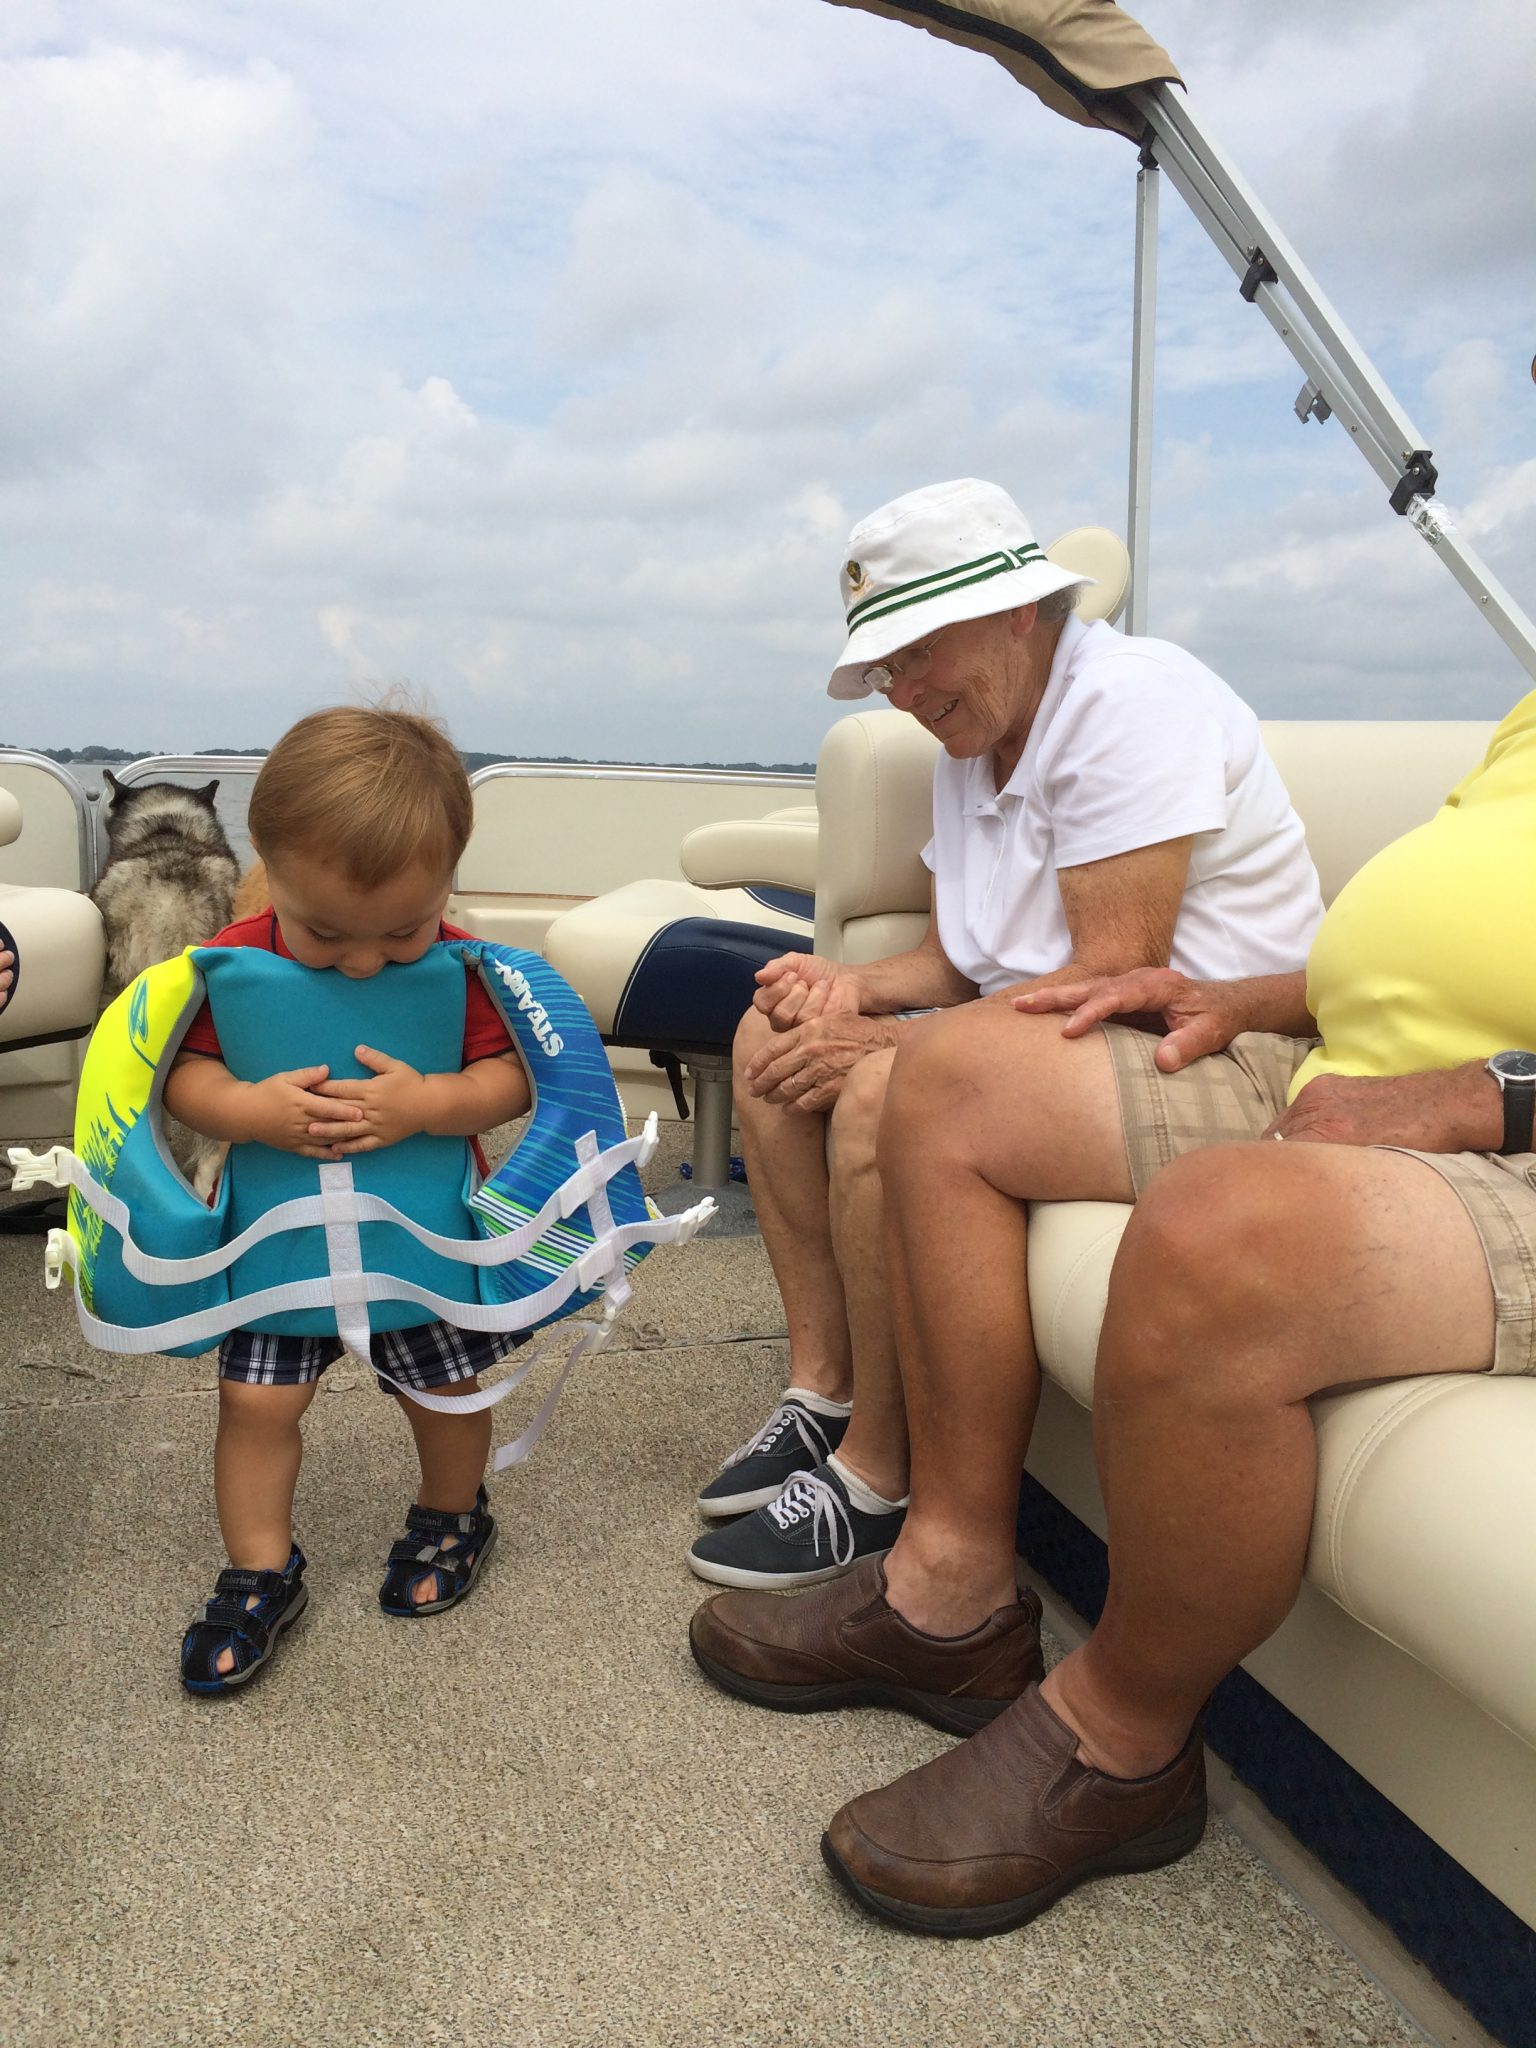 Grandma boating with the family.